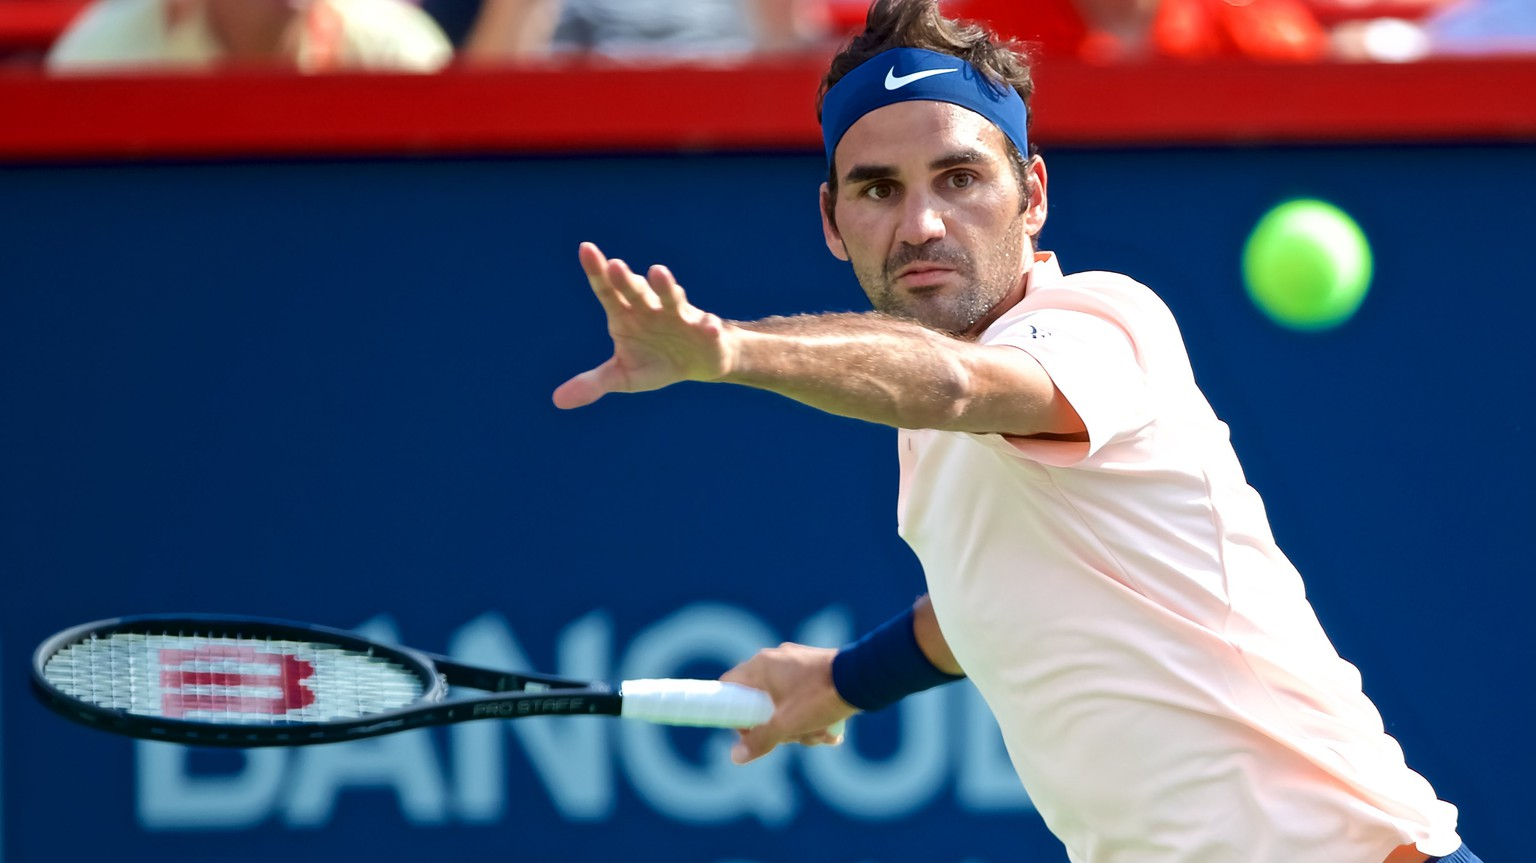 epa06143098 Roger Federer of Switzerland in action against Alexander Zverev of Germany during the ATP Rogers cup men's final in Montreal, Canada, 13 August 2017.  EPA/ANDRE PICHETTE